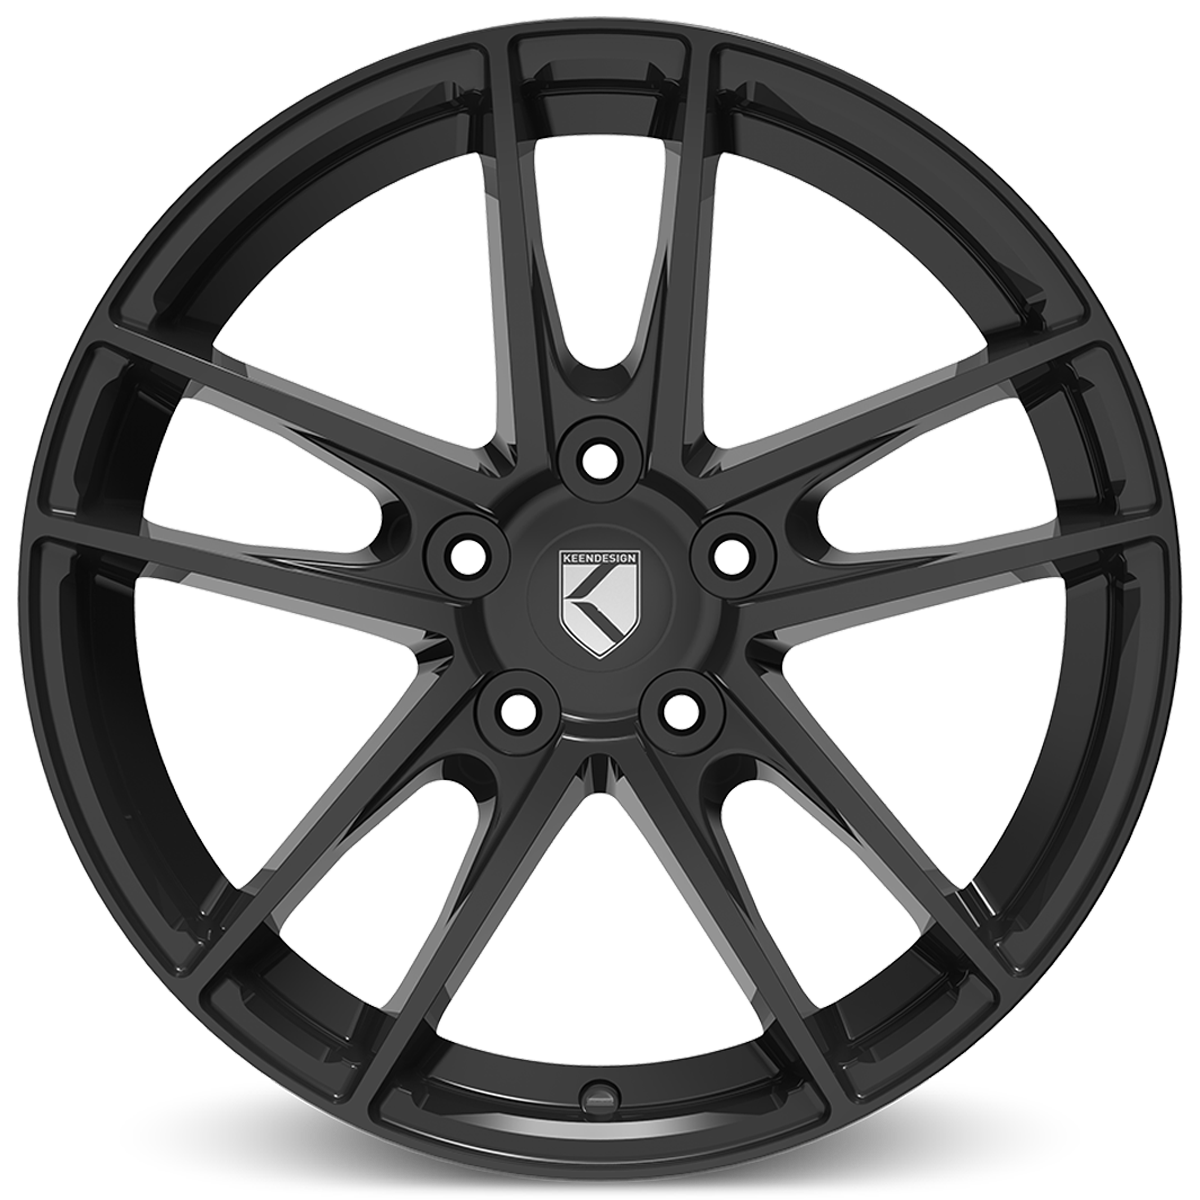 kd-04 gb front.png